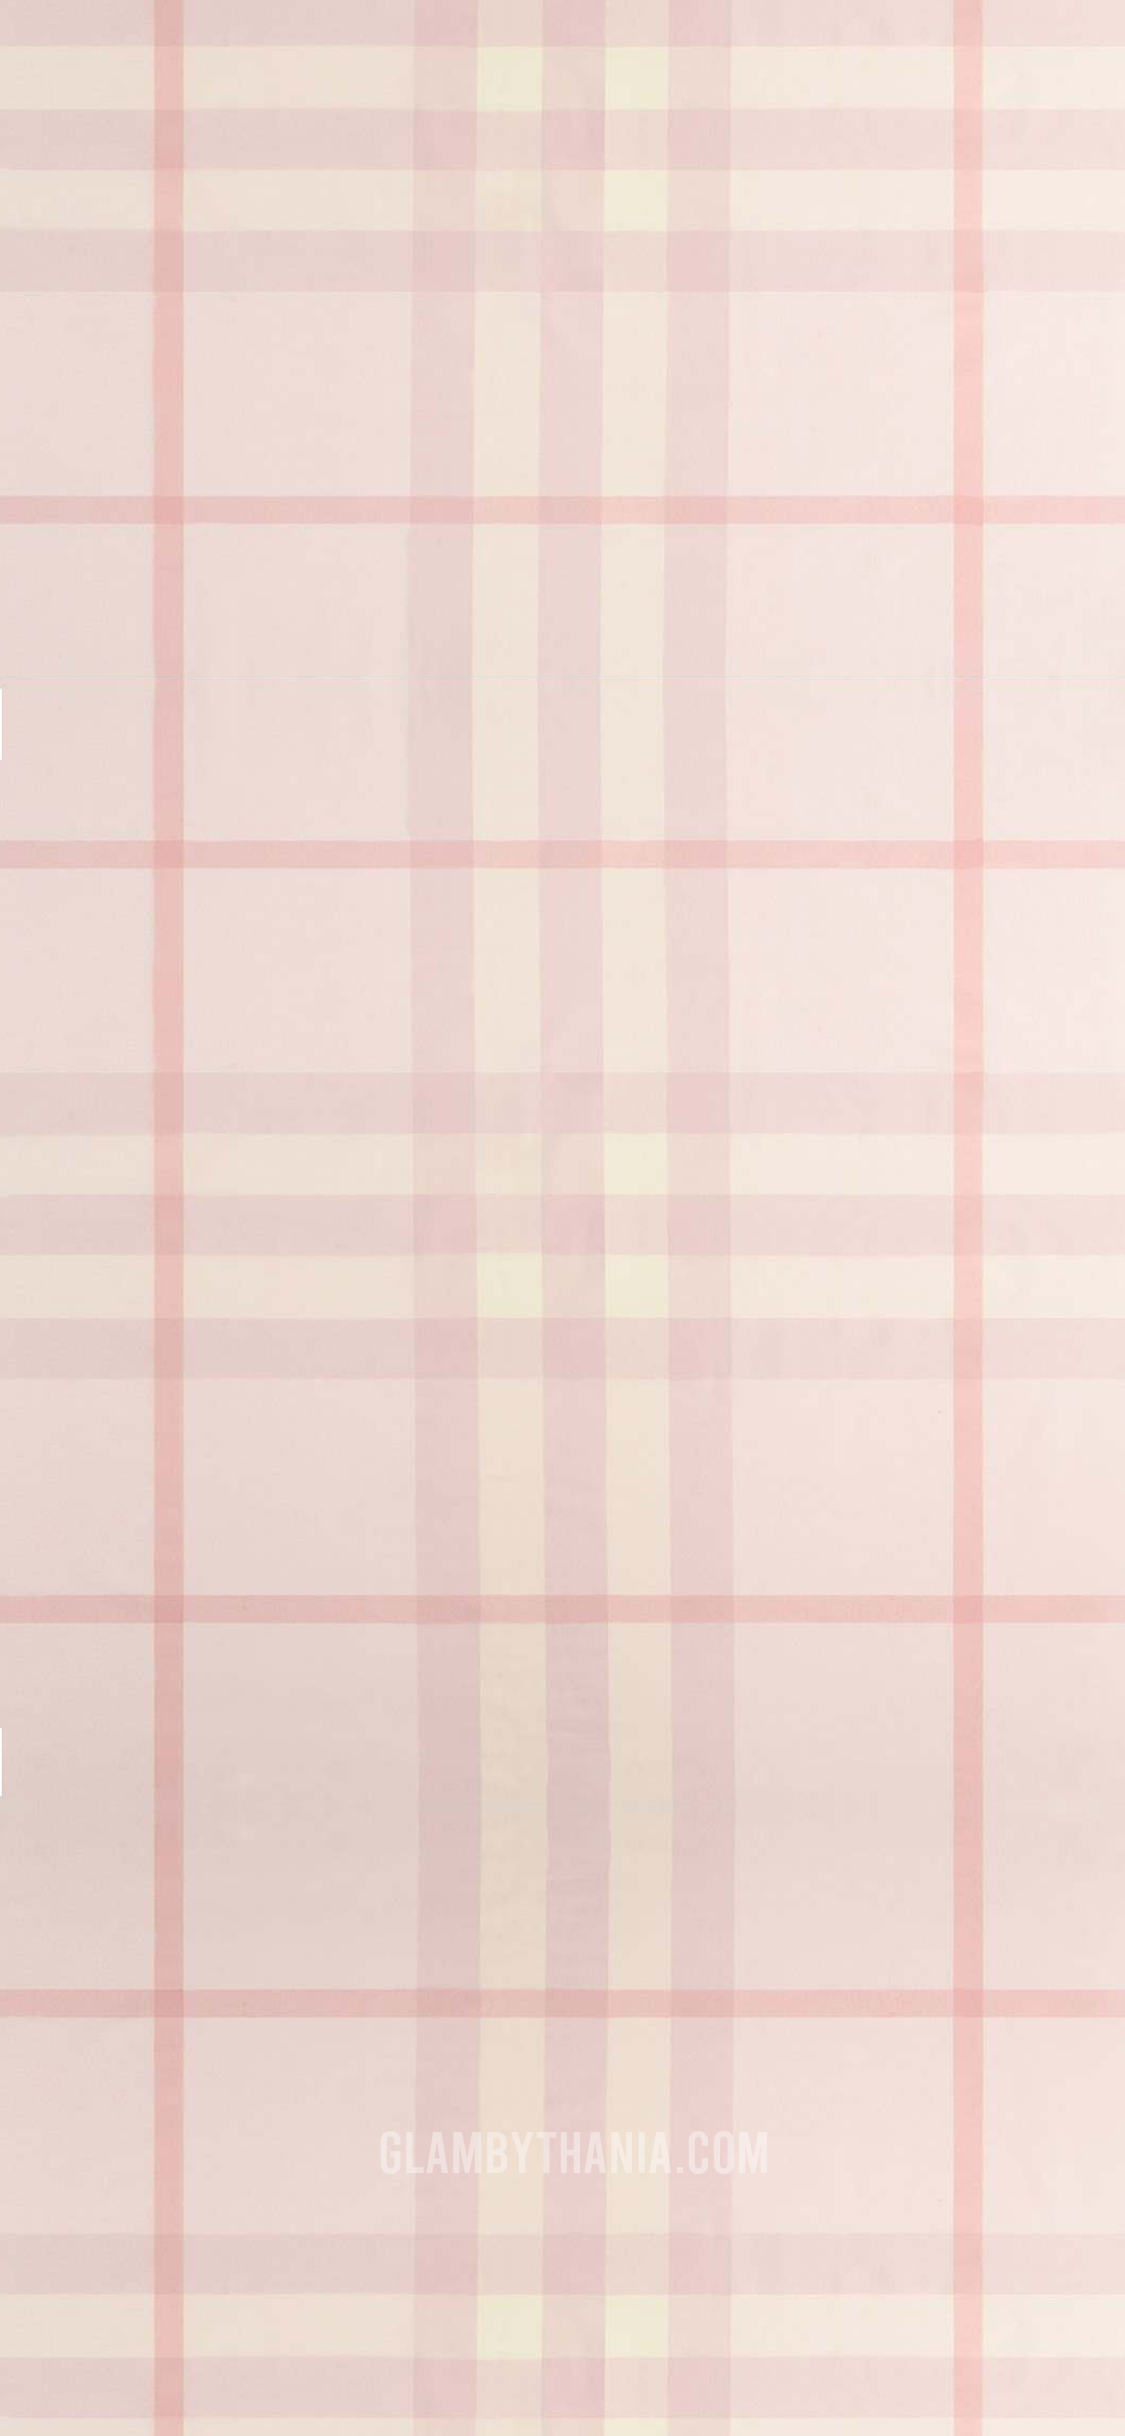 FREE Pink & Girly Luxury iphone wallpapers